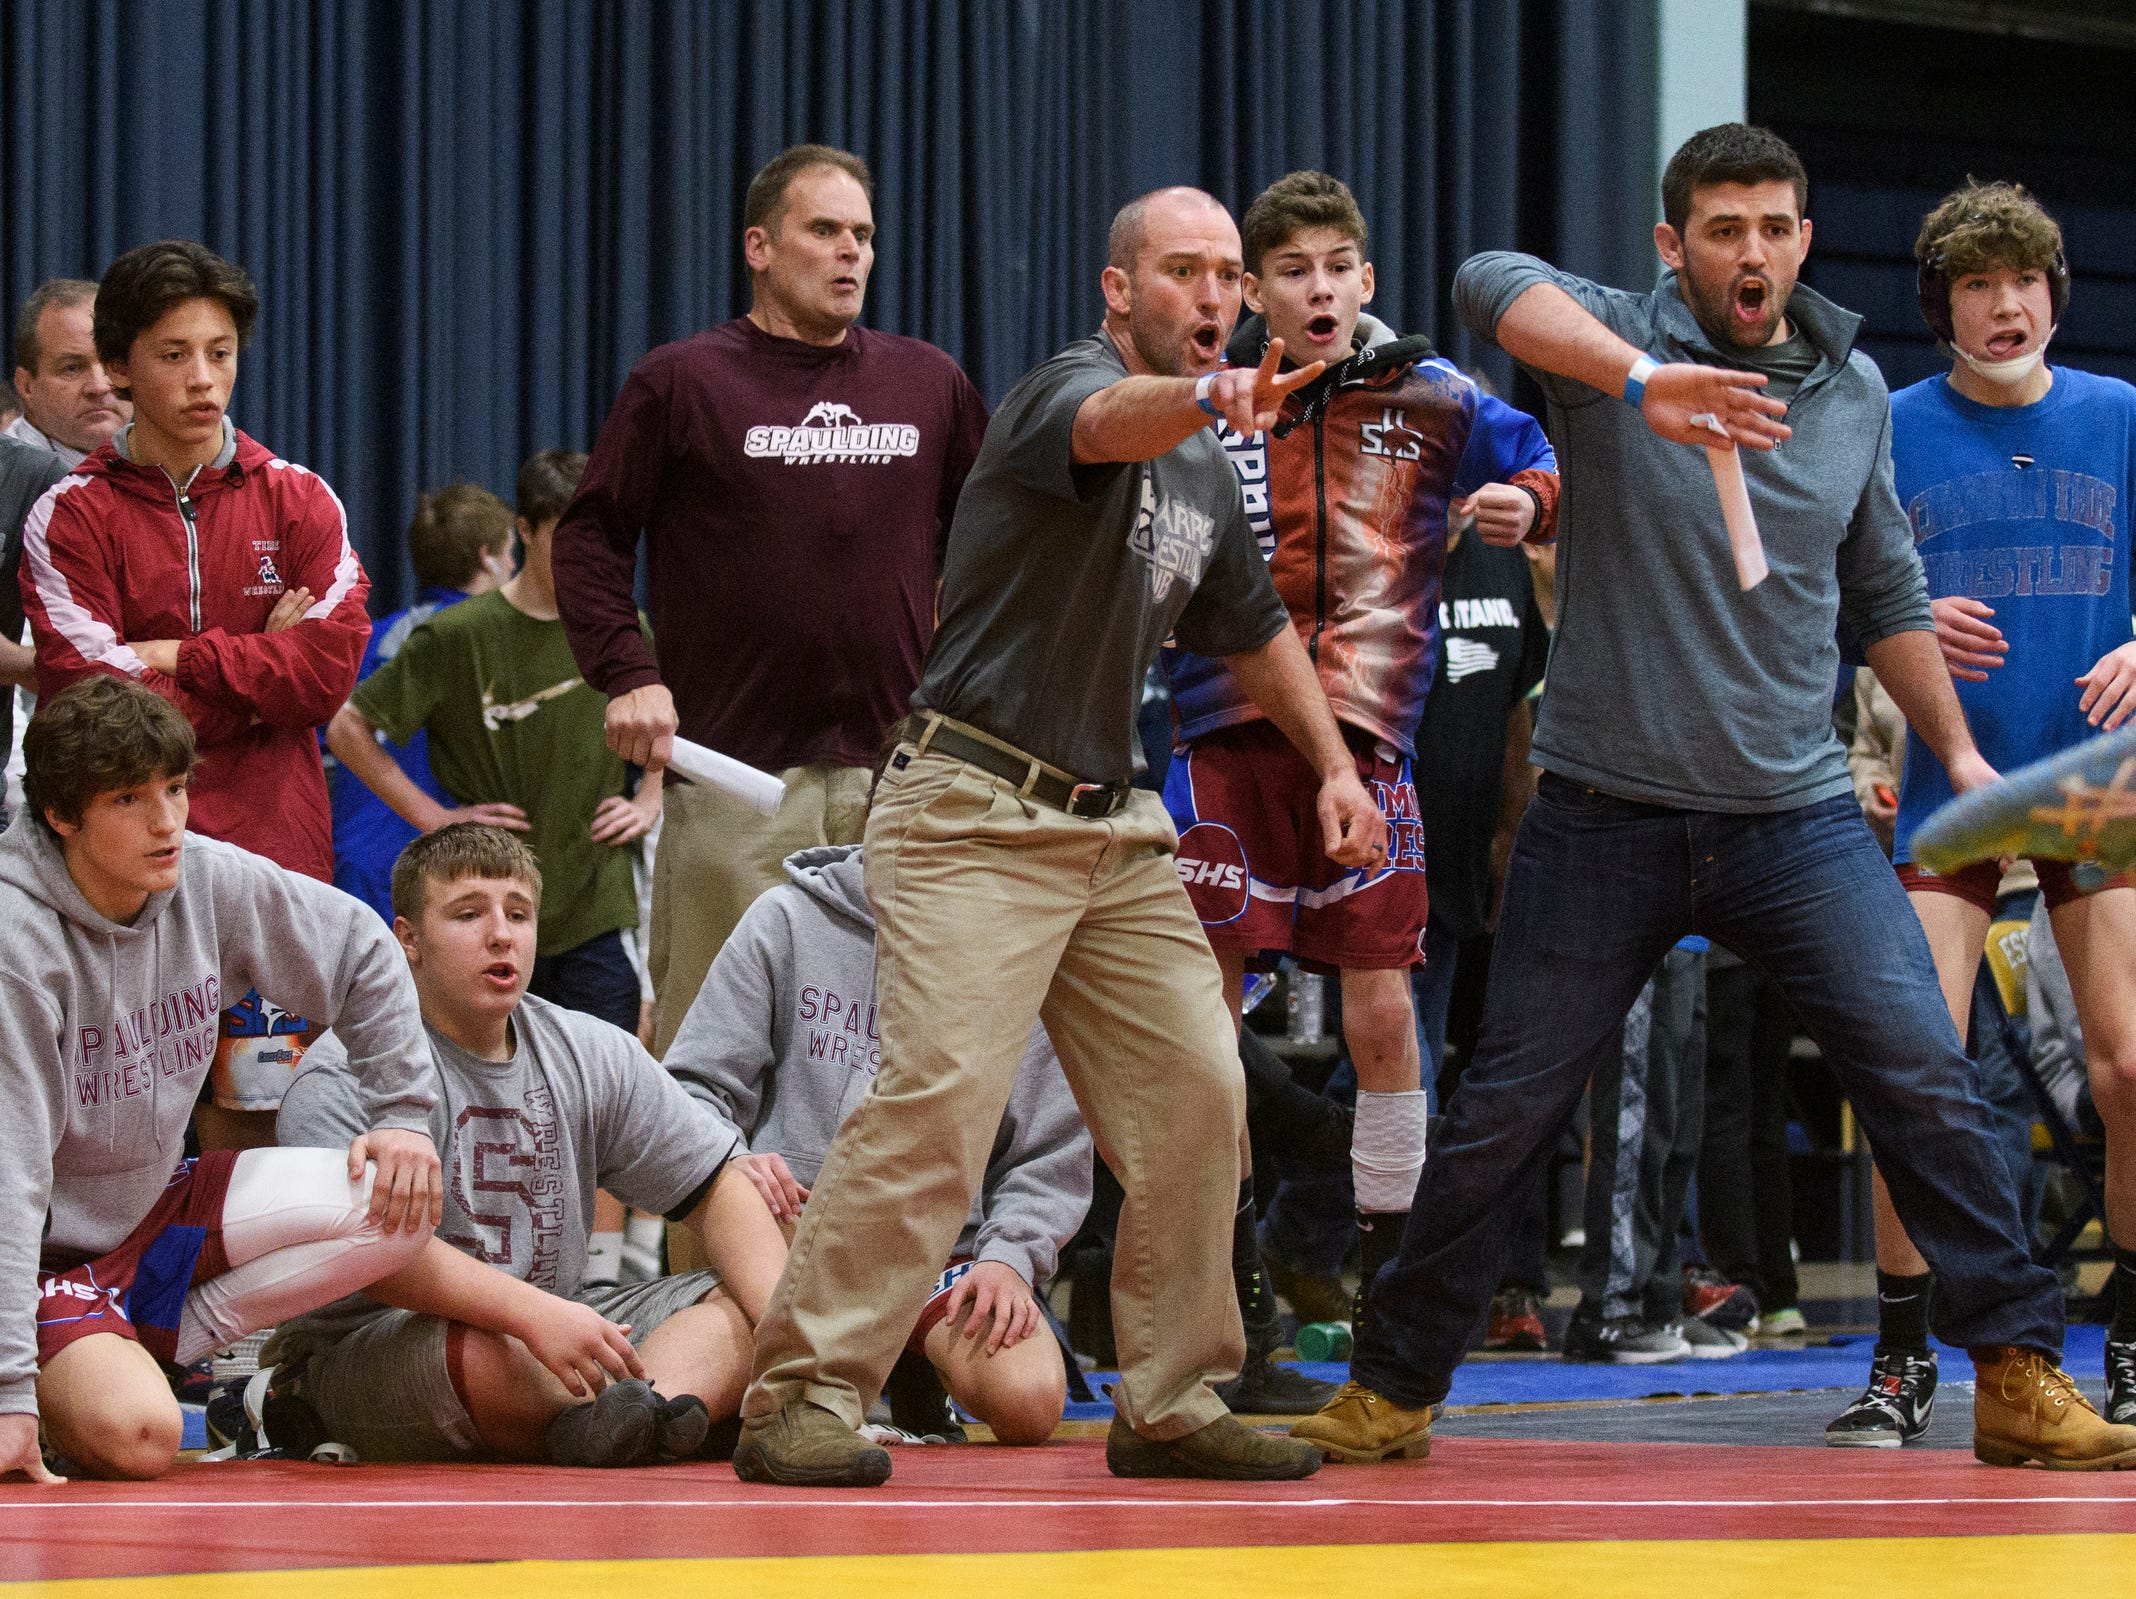 The Spaulding catches and team cheer for Carter Dickerson during the Michael J. Baker Essex Classic wrestling tournament at Essex High School on Friday afternoon January 18, 2019 in Essex, Vermont.